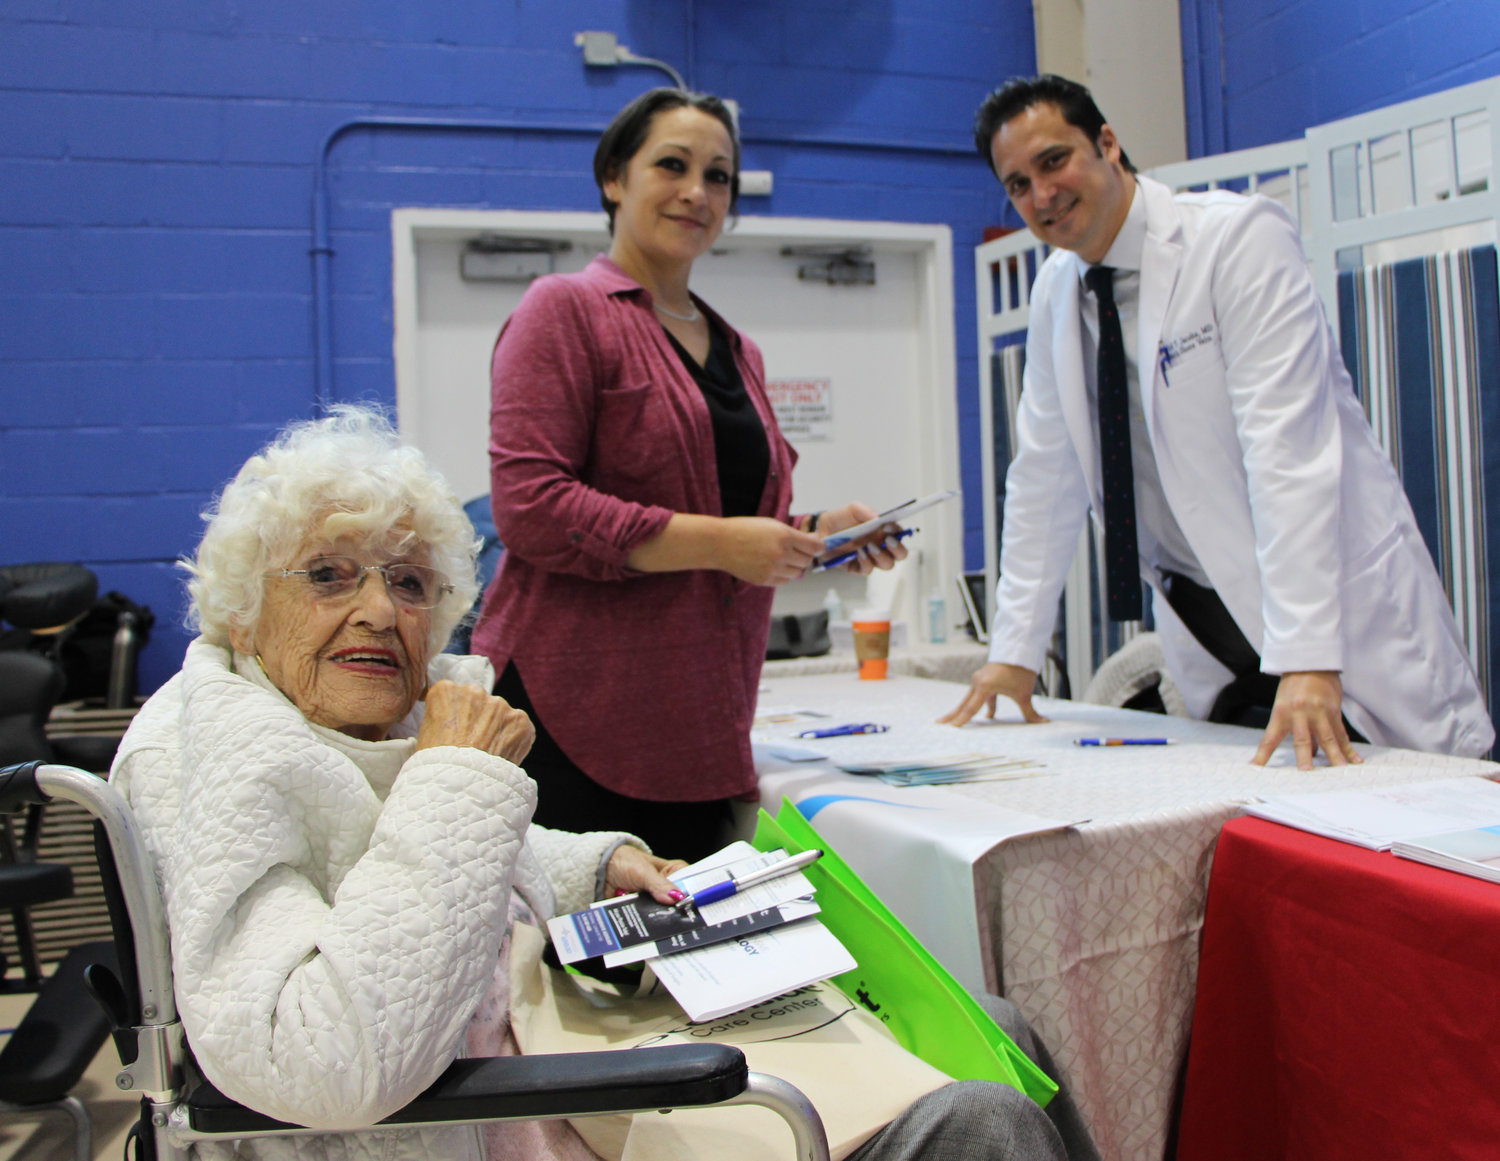 Dr. David Jacobs, of South Shore Vein, far right, gave information to an attendee.